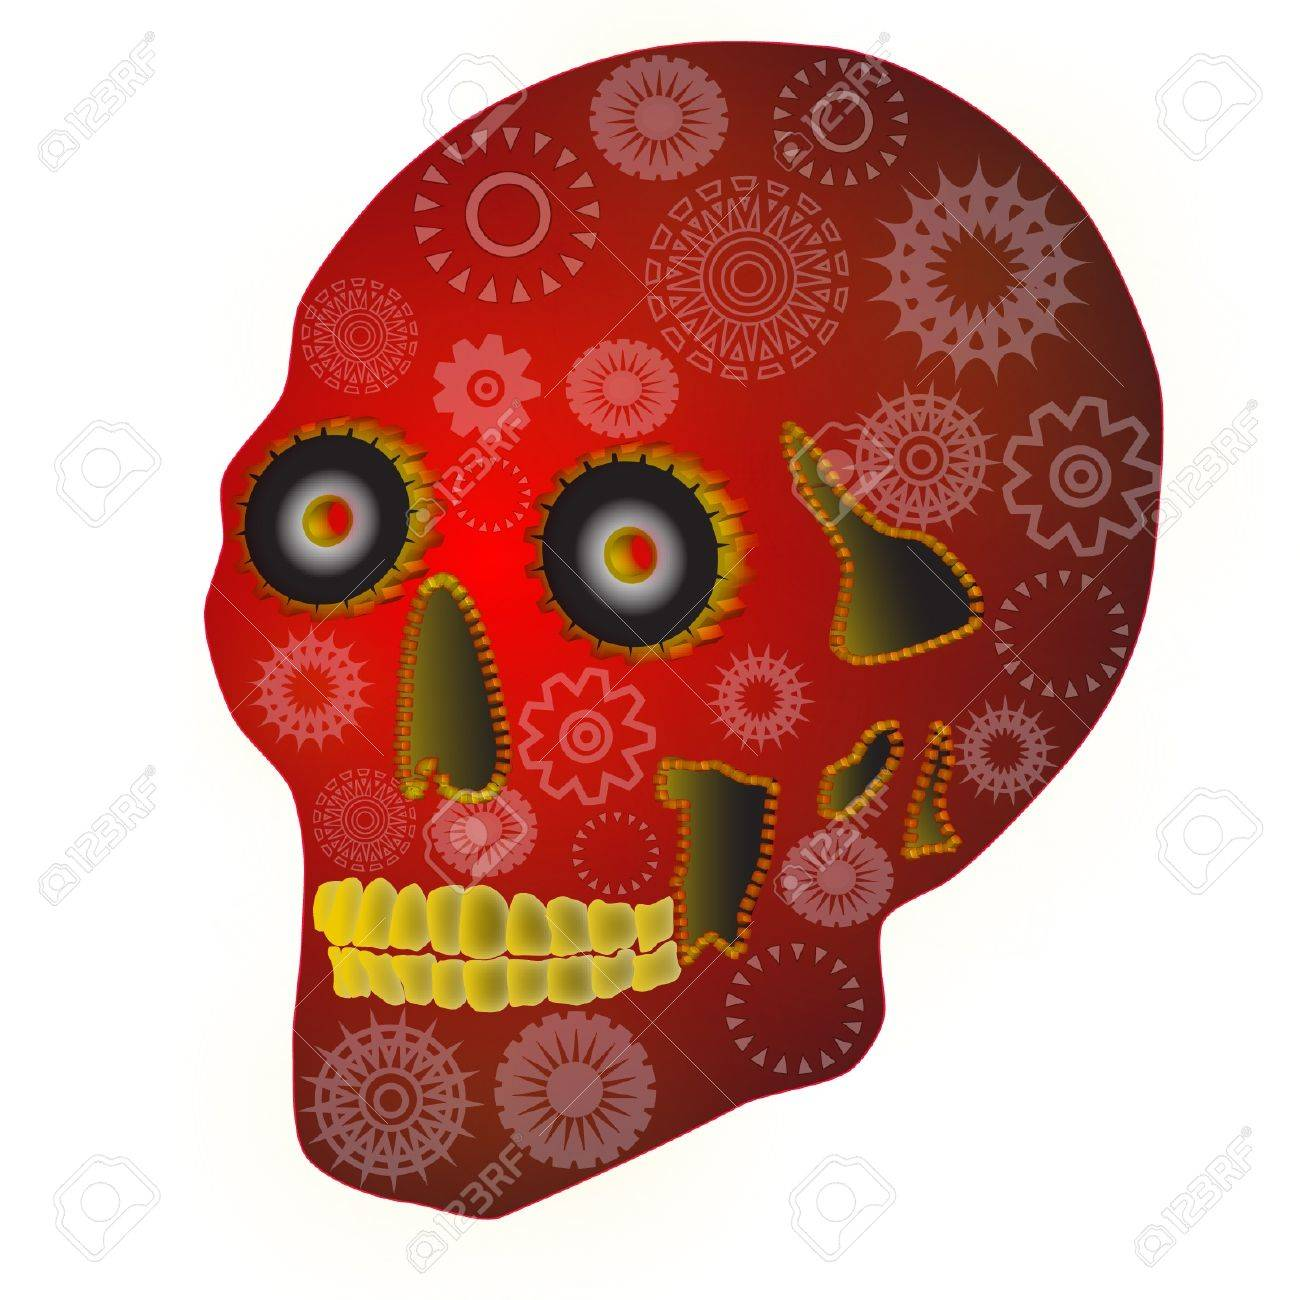 Gear Skull has steampunk and Mexican Day of the Dead flavors - 16633040